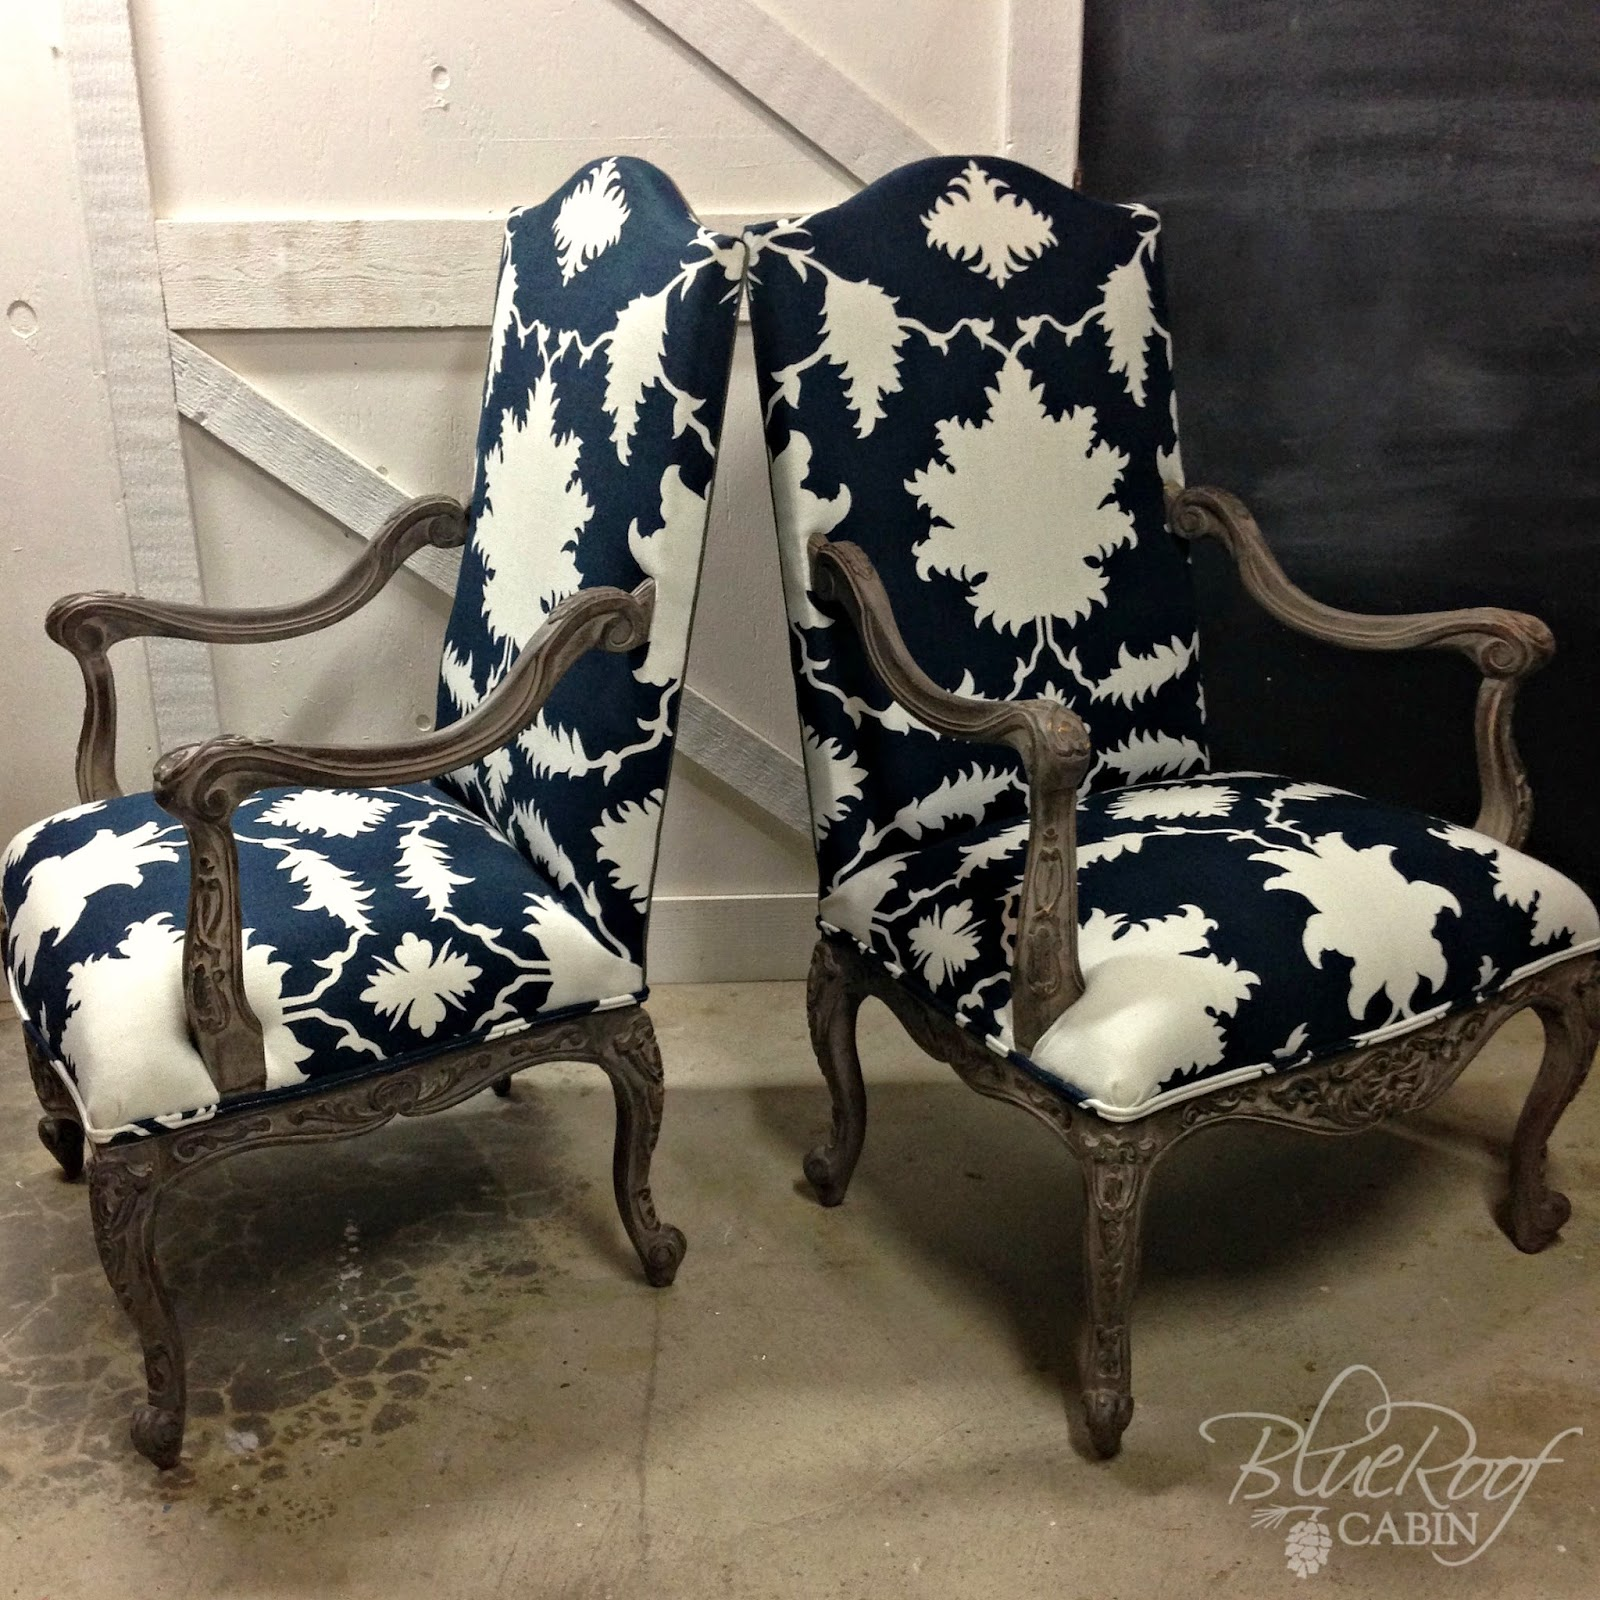 I Like These Chairs So Much I Named Them. These Were A Recent Client  Project. I Have Been Crushing On This Fabric For Quite Some Time Now.